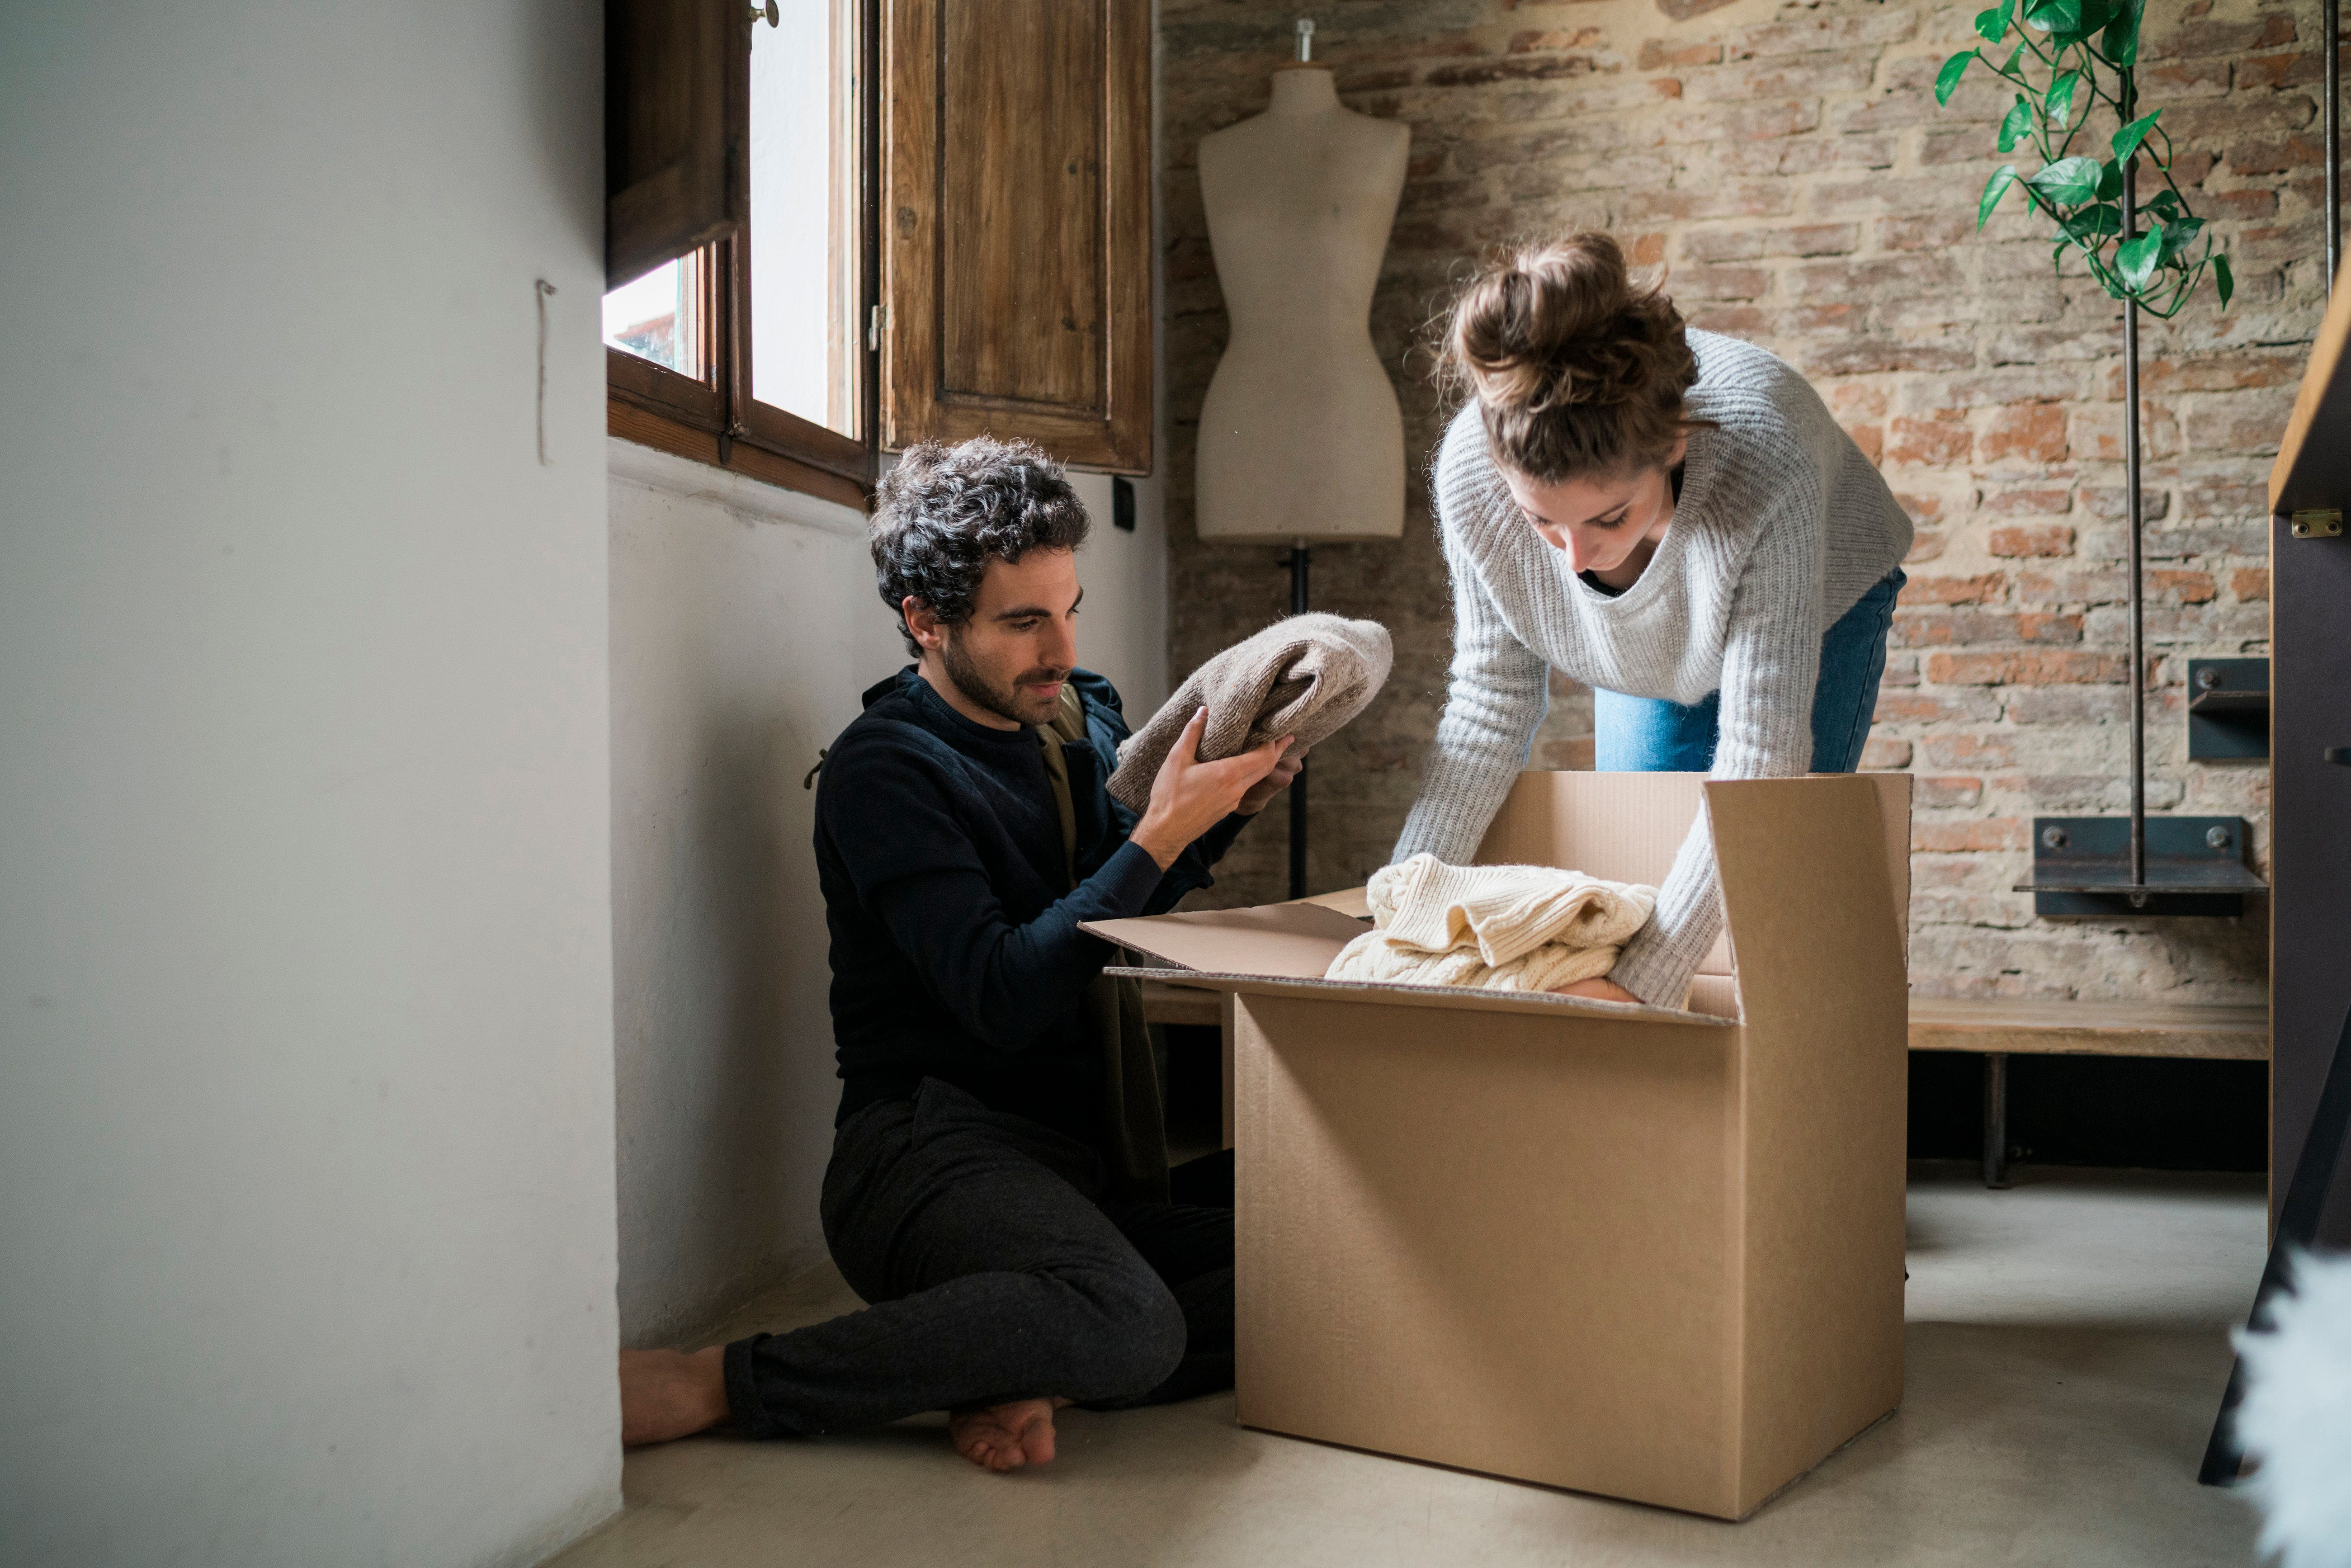 6 Signs It's Too Soon To Move In Together